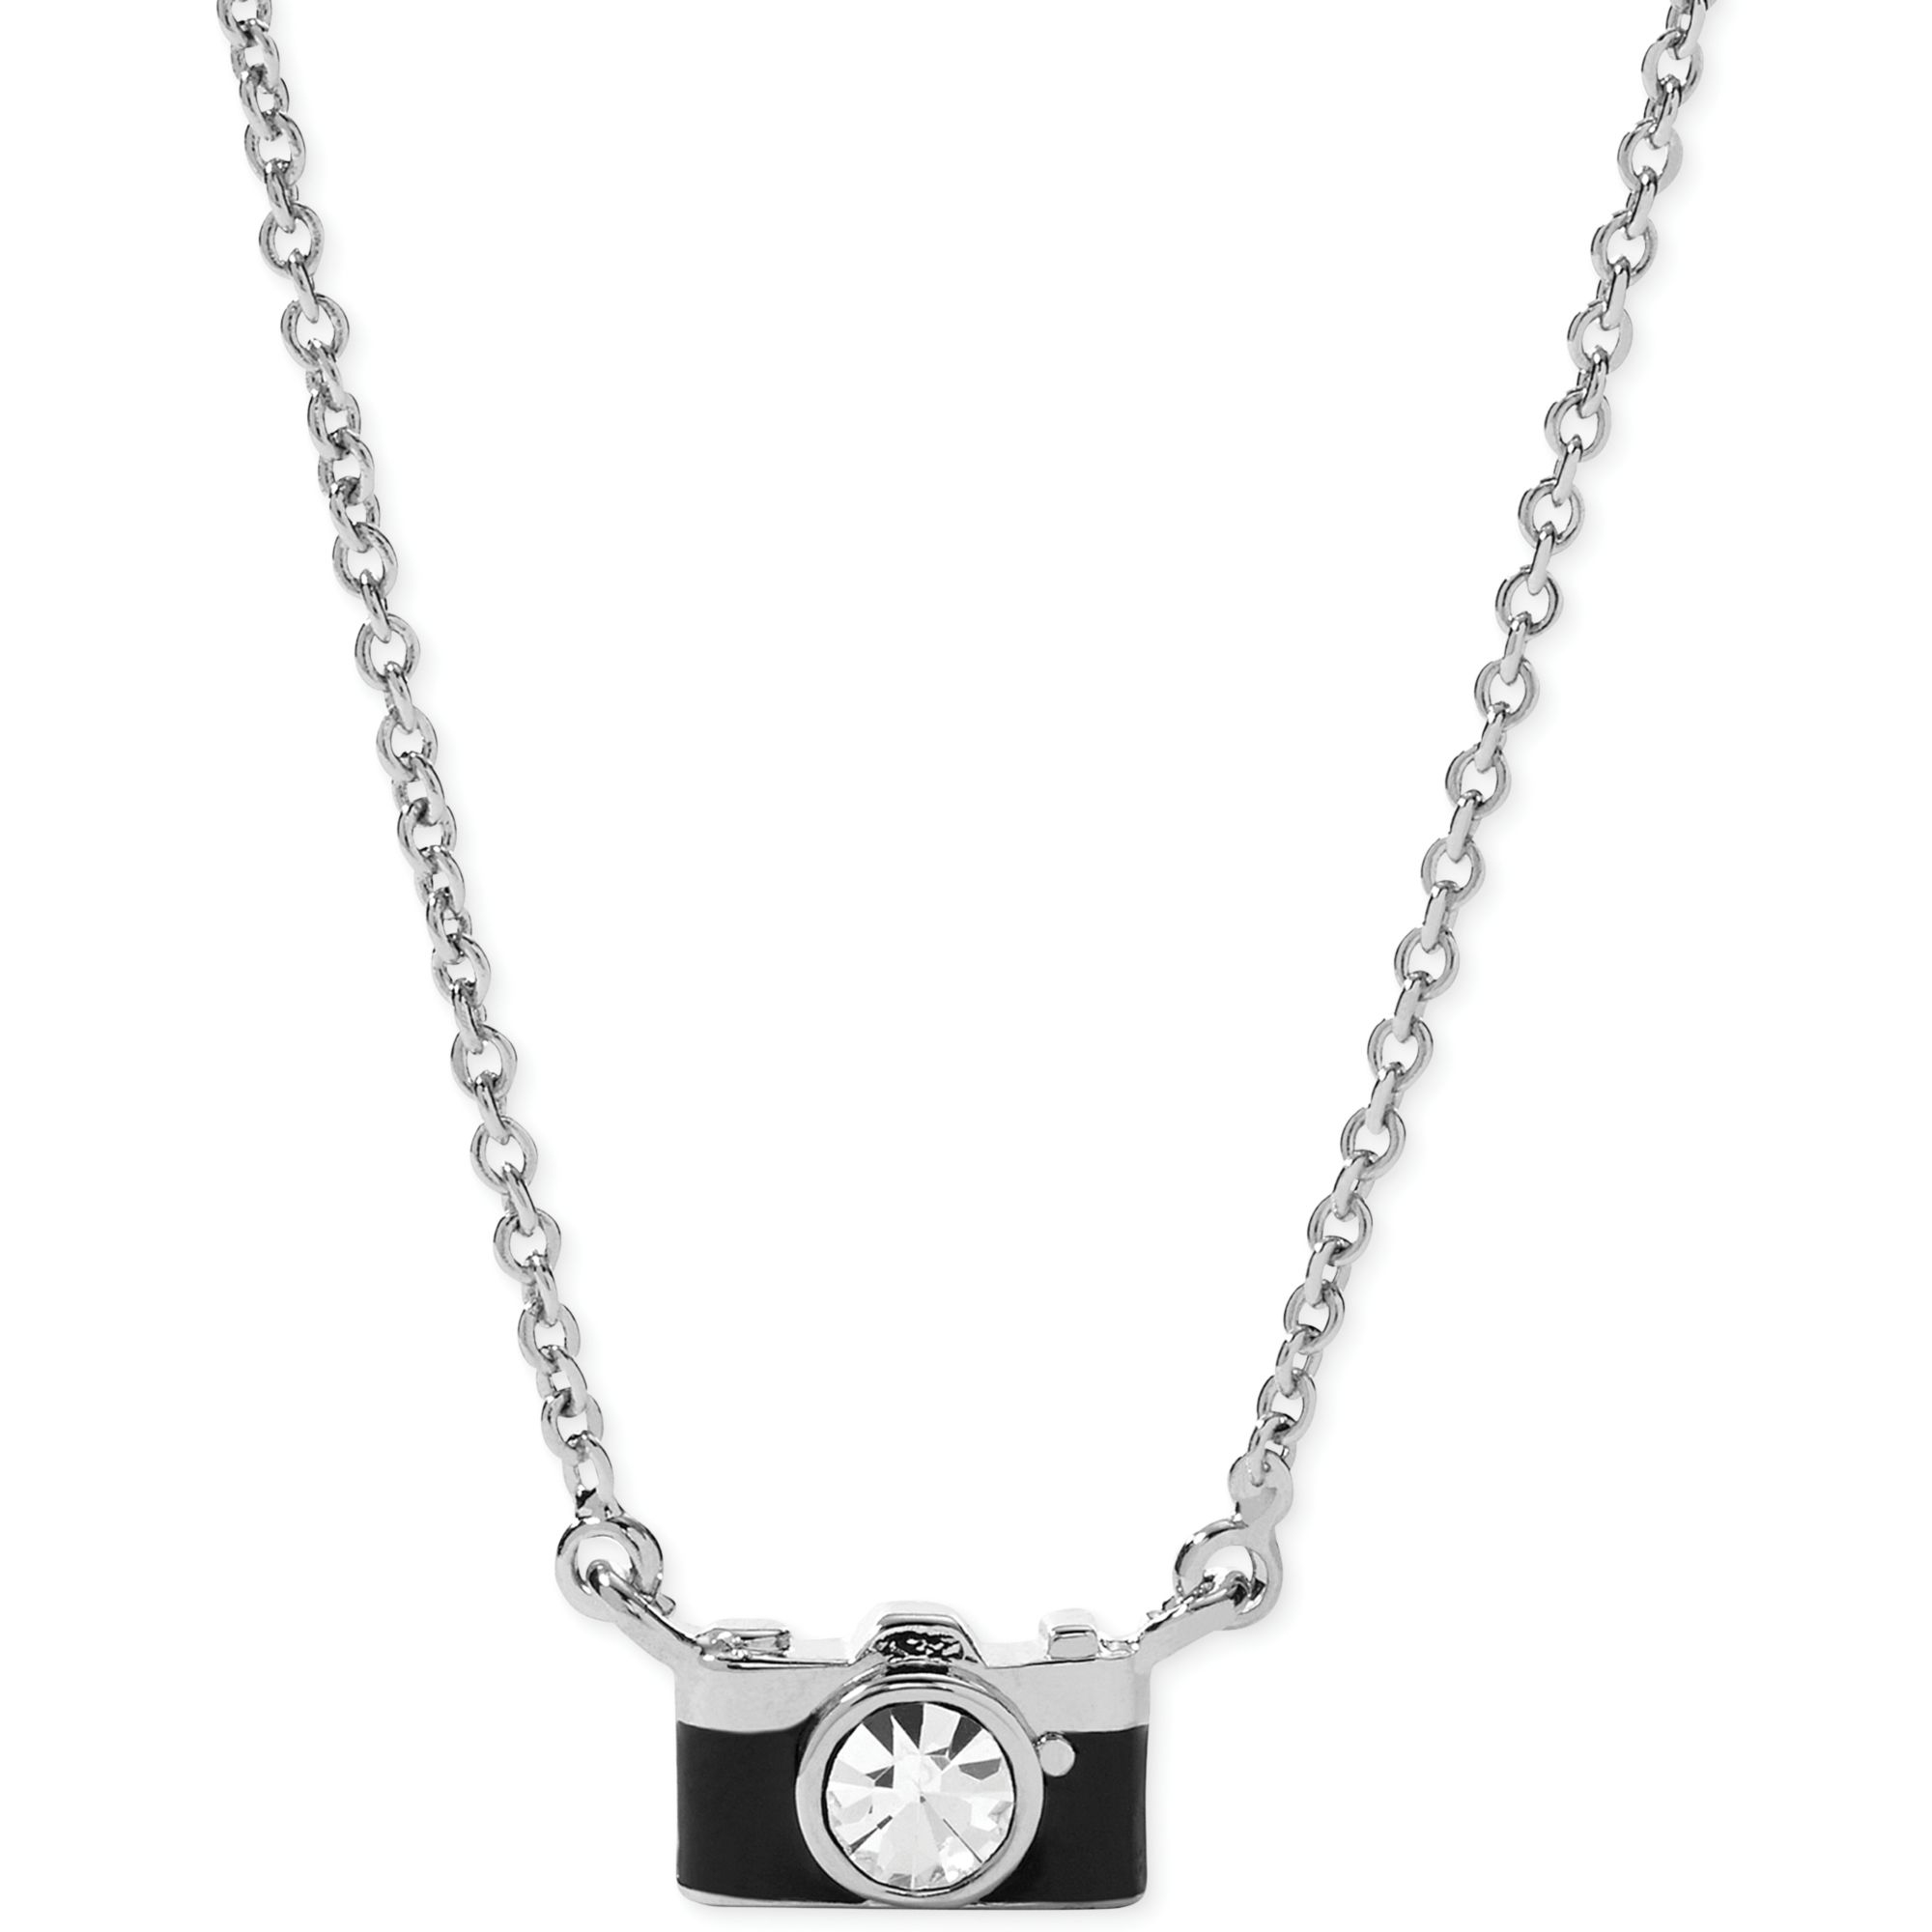 d4e7c548c8fa0 Fossil Metallic Stainless Steel Crystal Camera Pendant Necklace